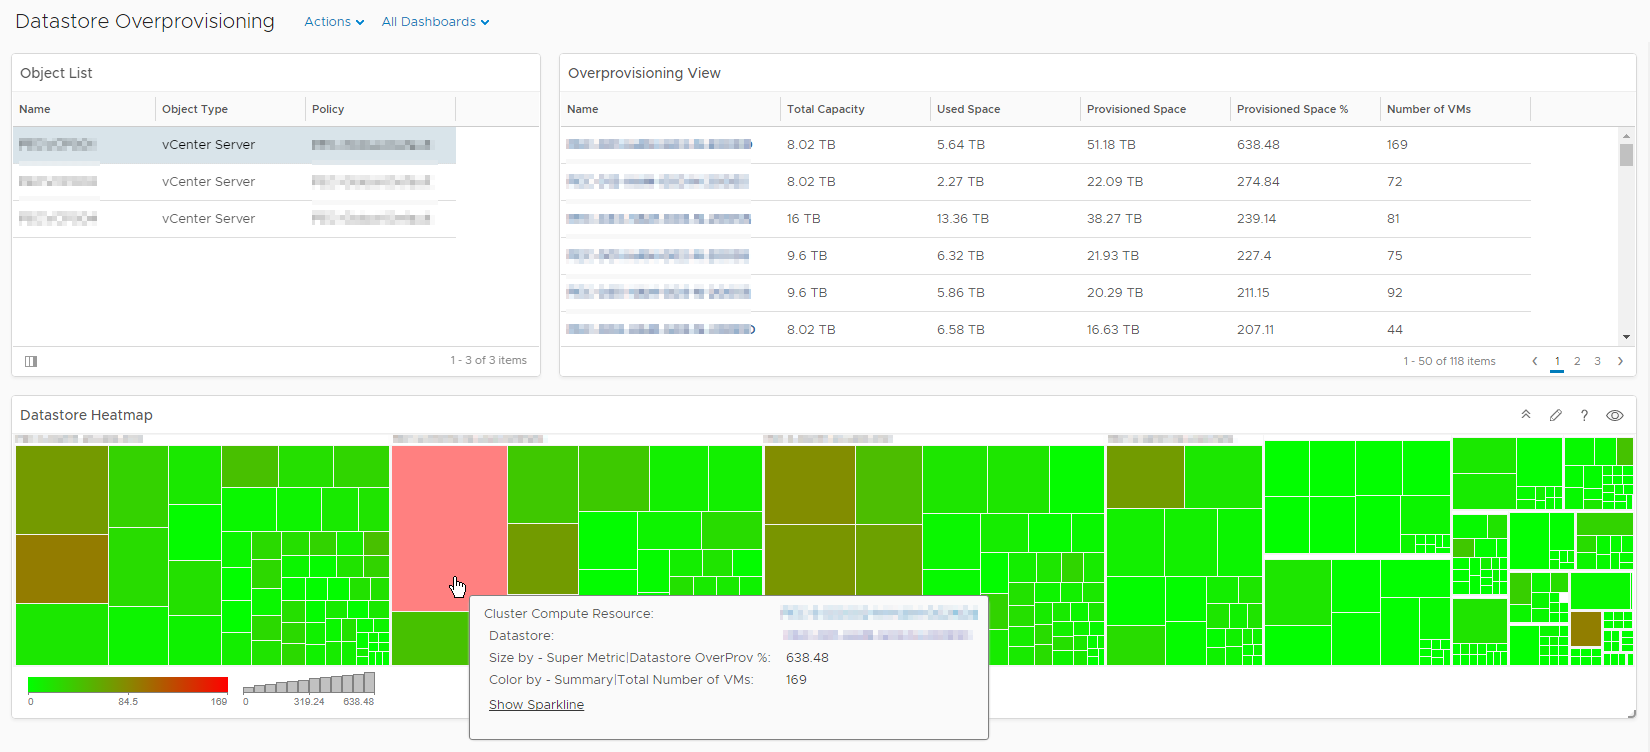 vRealize Operations Manager - Datastore Overprovisioning - Dashboard